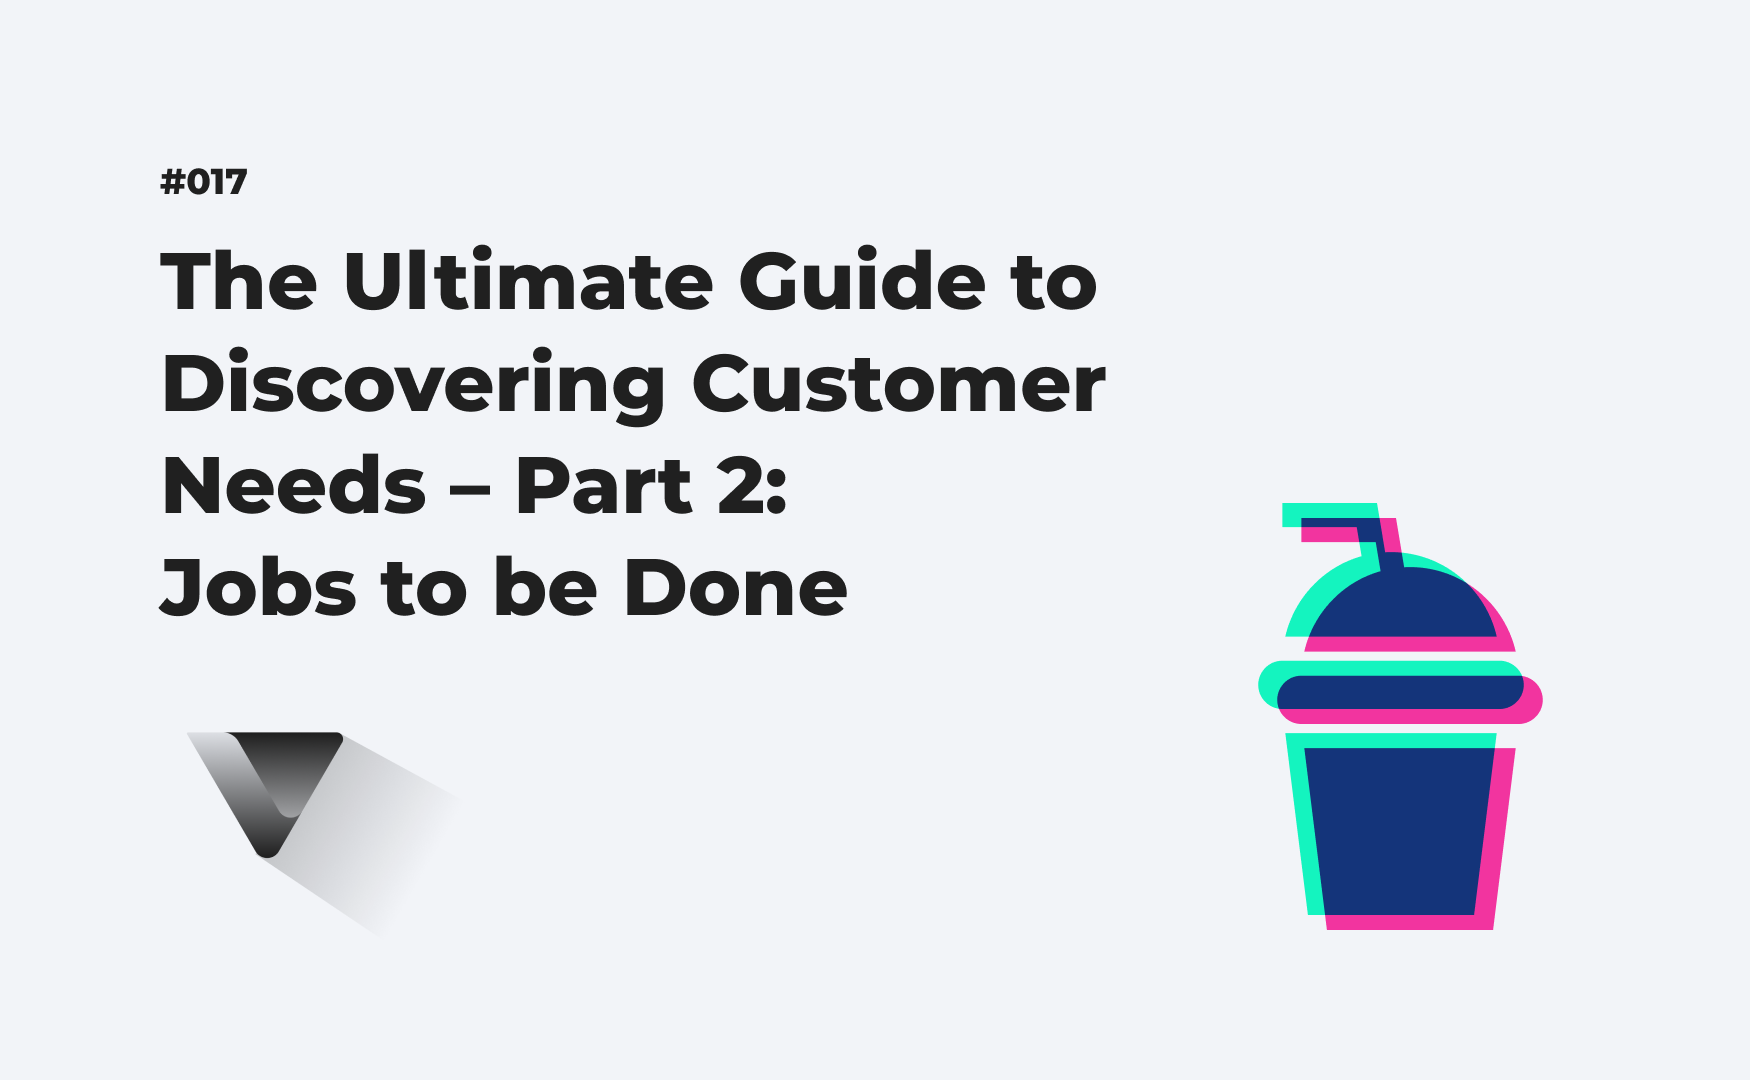 The Ultimate Guide to Discovering Customer Needs – Part 2: Jobs to be Done